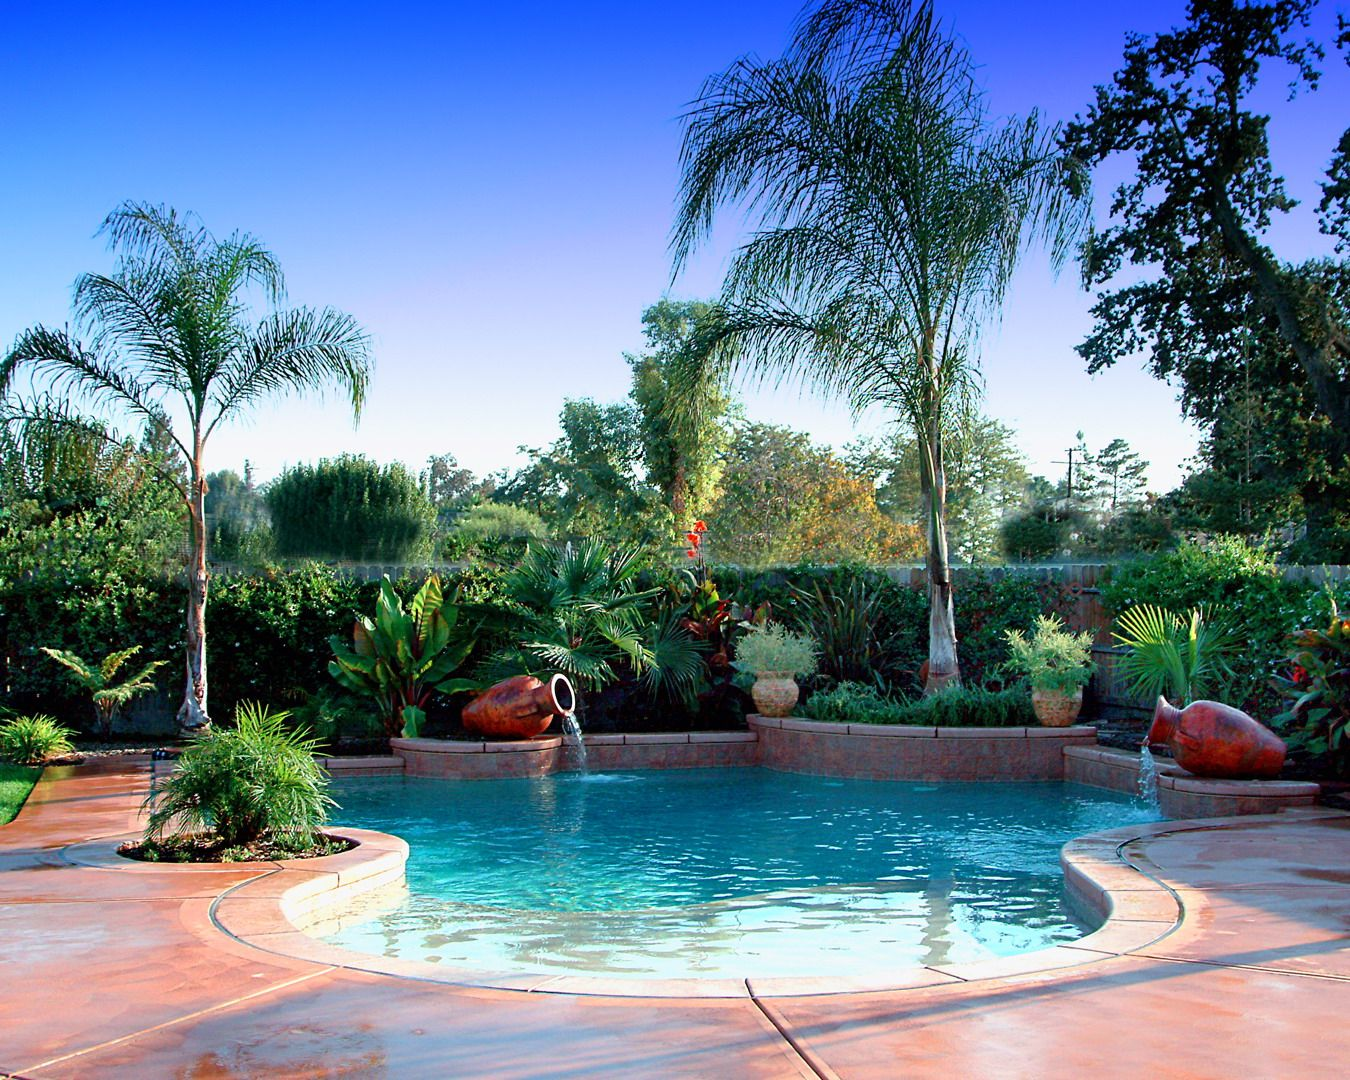 Pin by UltraOutdoors.com on Stunning Pools | Pool ...